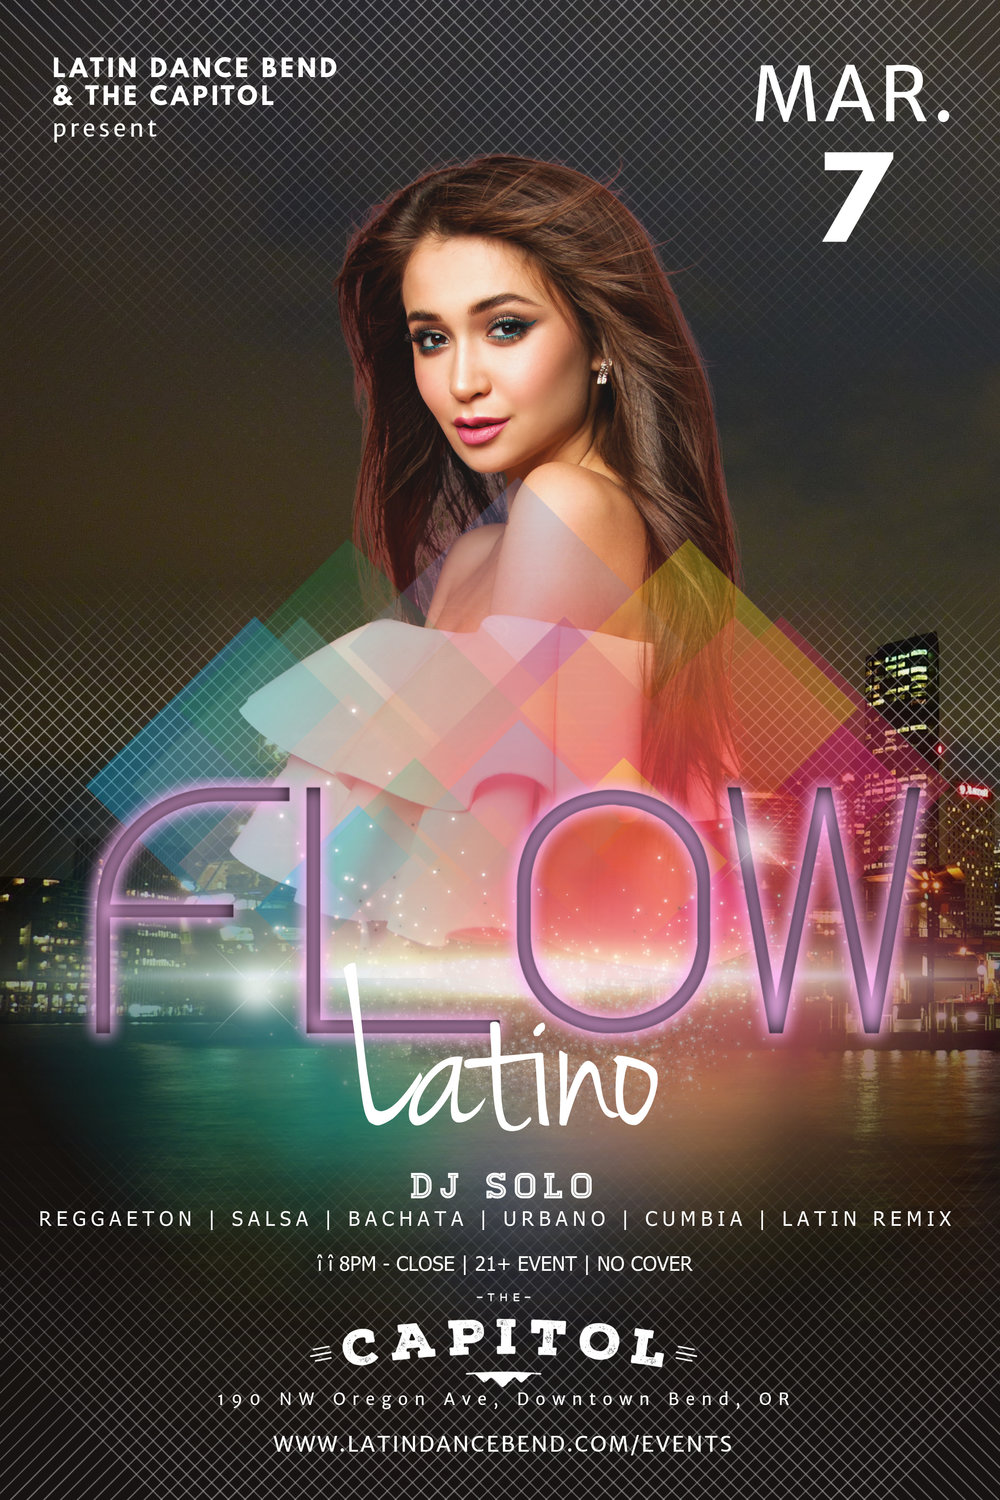 FLOWLatino-March7-TheCapitol.jpg